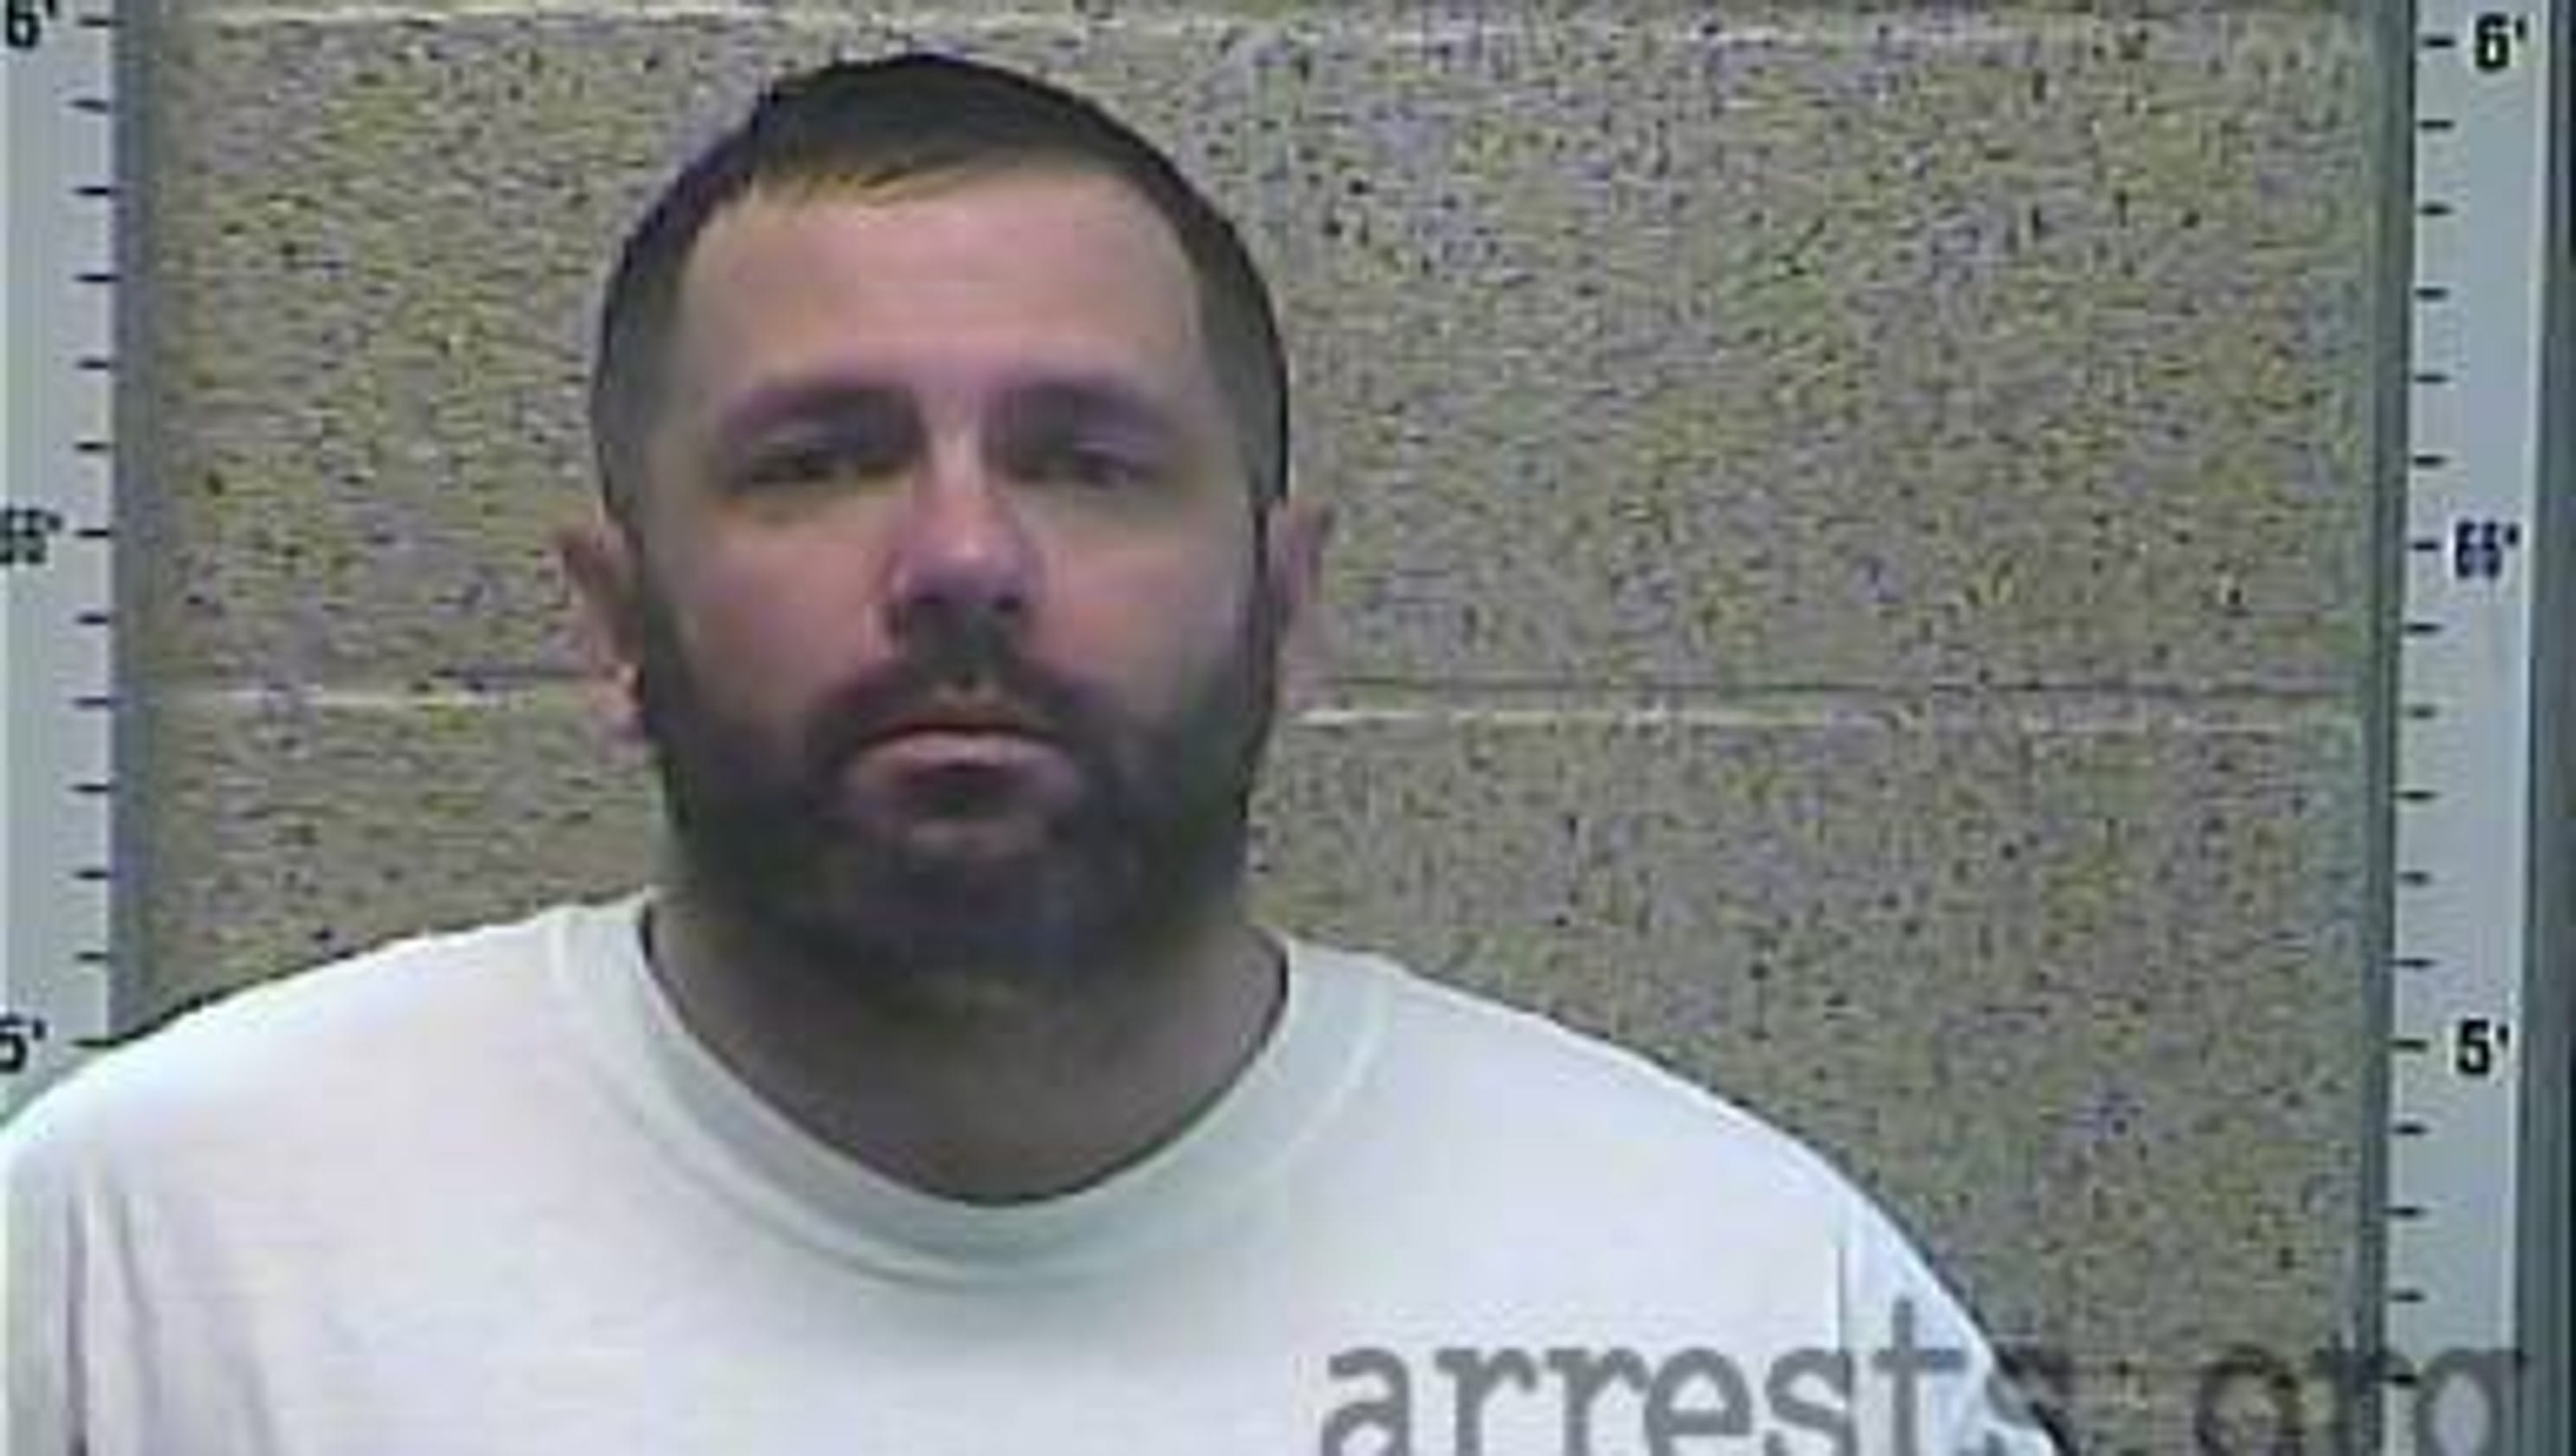 Henderson man allegedly steals from police, arrested – USA Breaking News